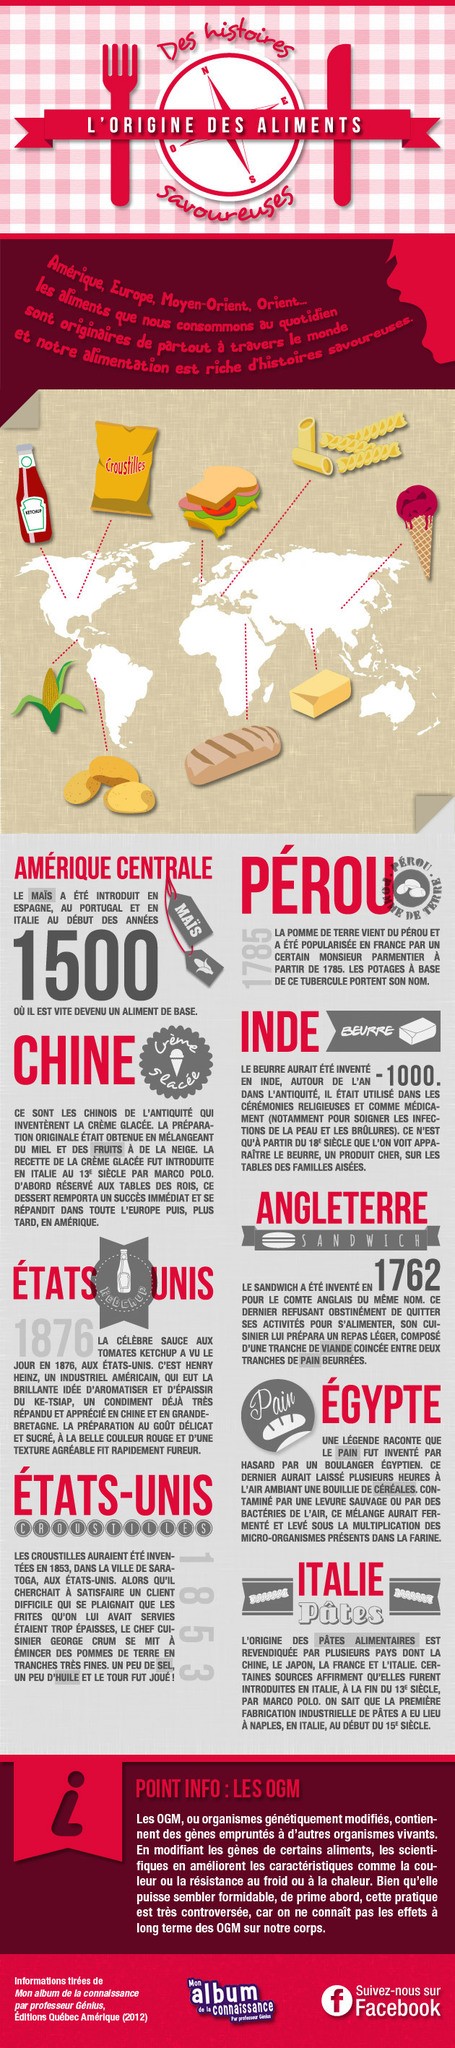 L'origine des aliments | Dictionnaire Visuel | Revolution in Education | Scoop.it